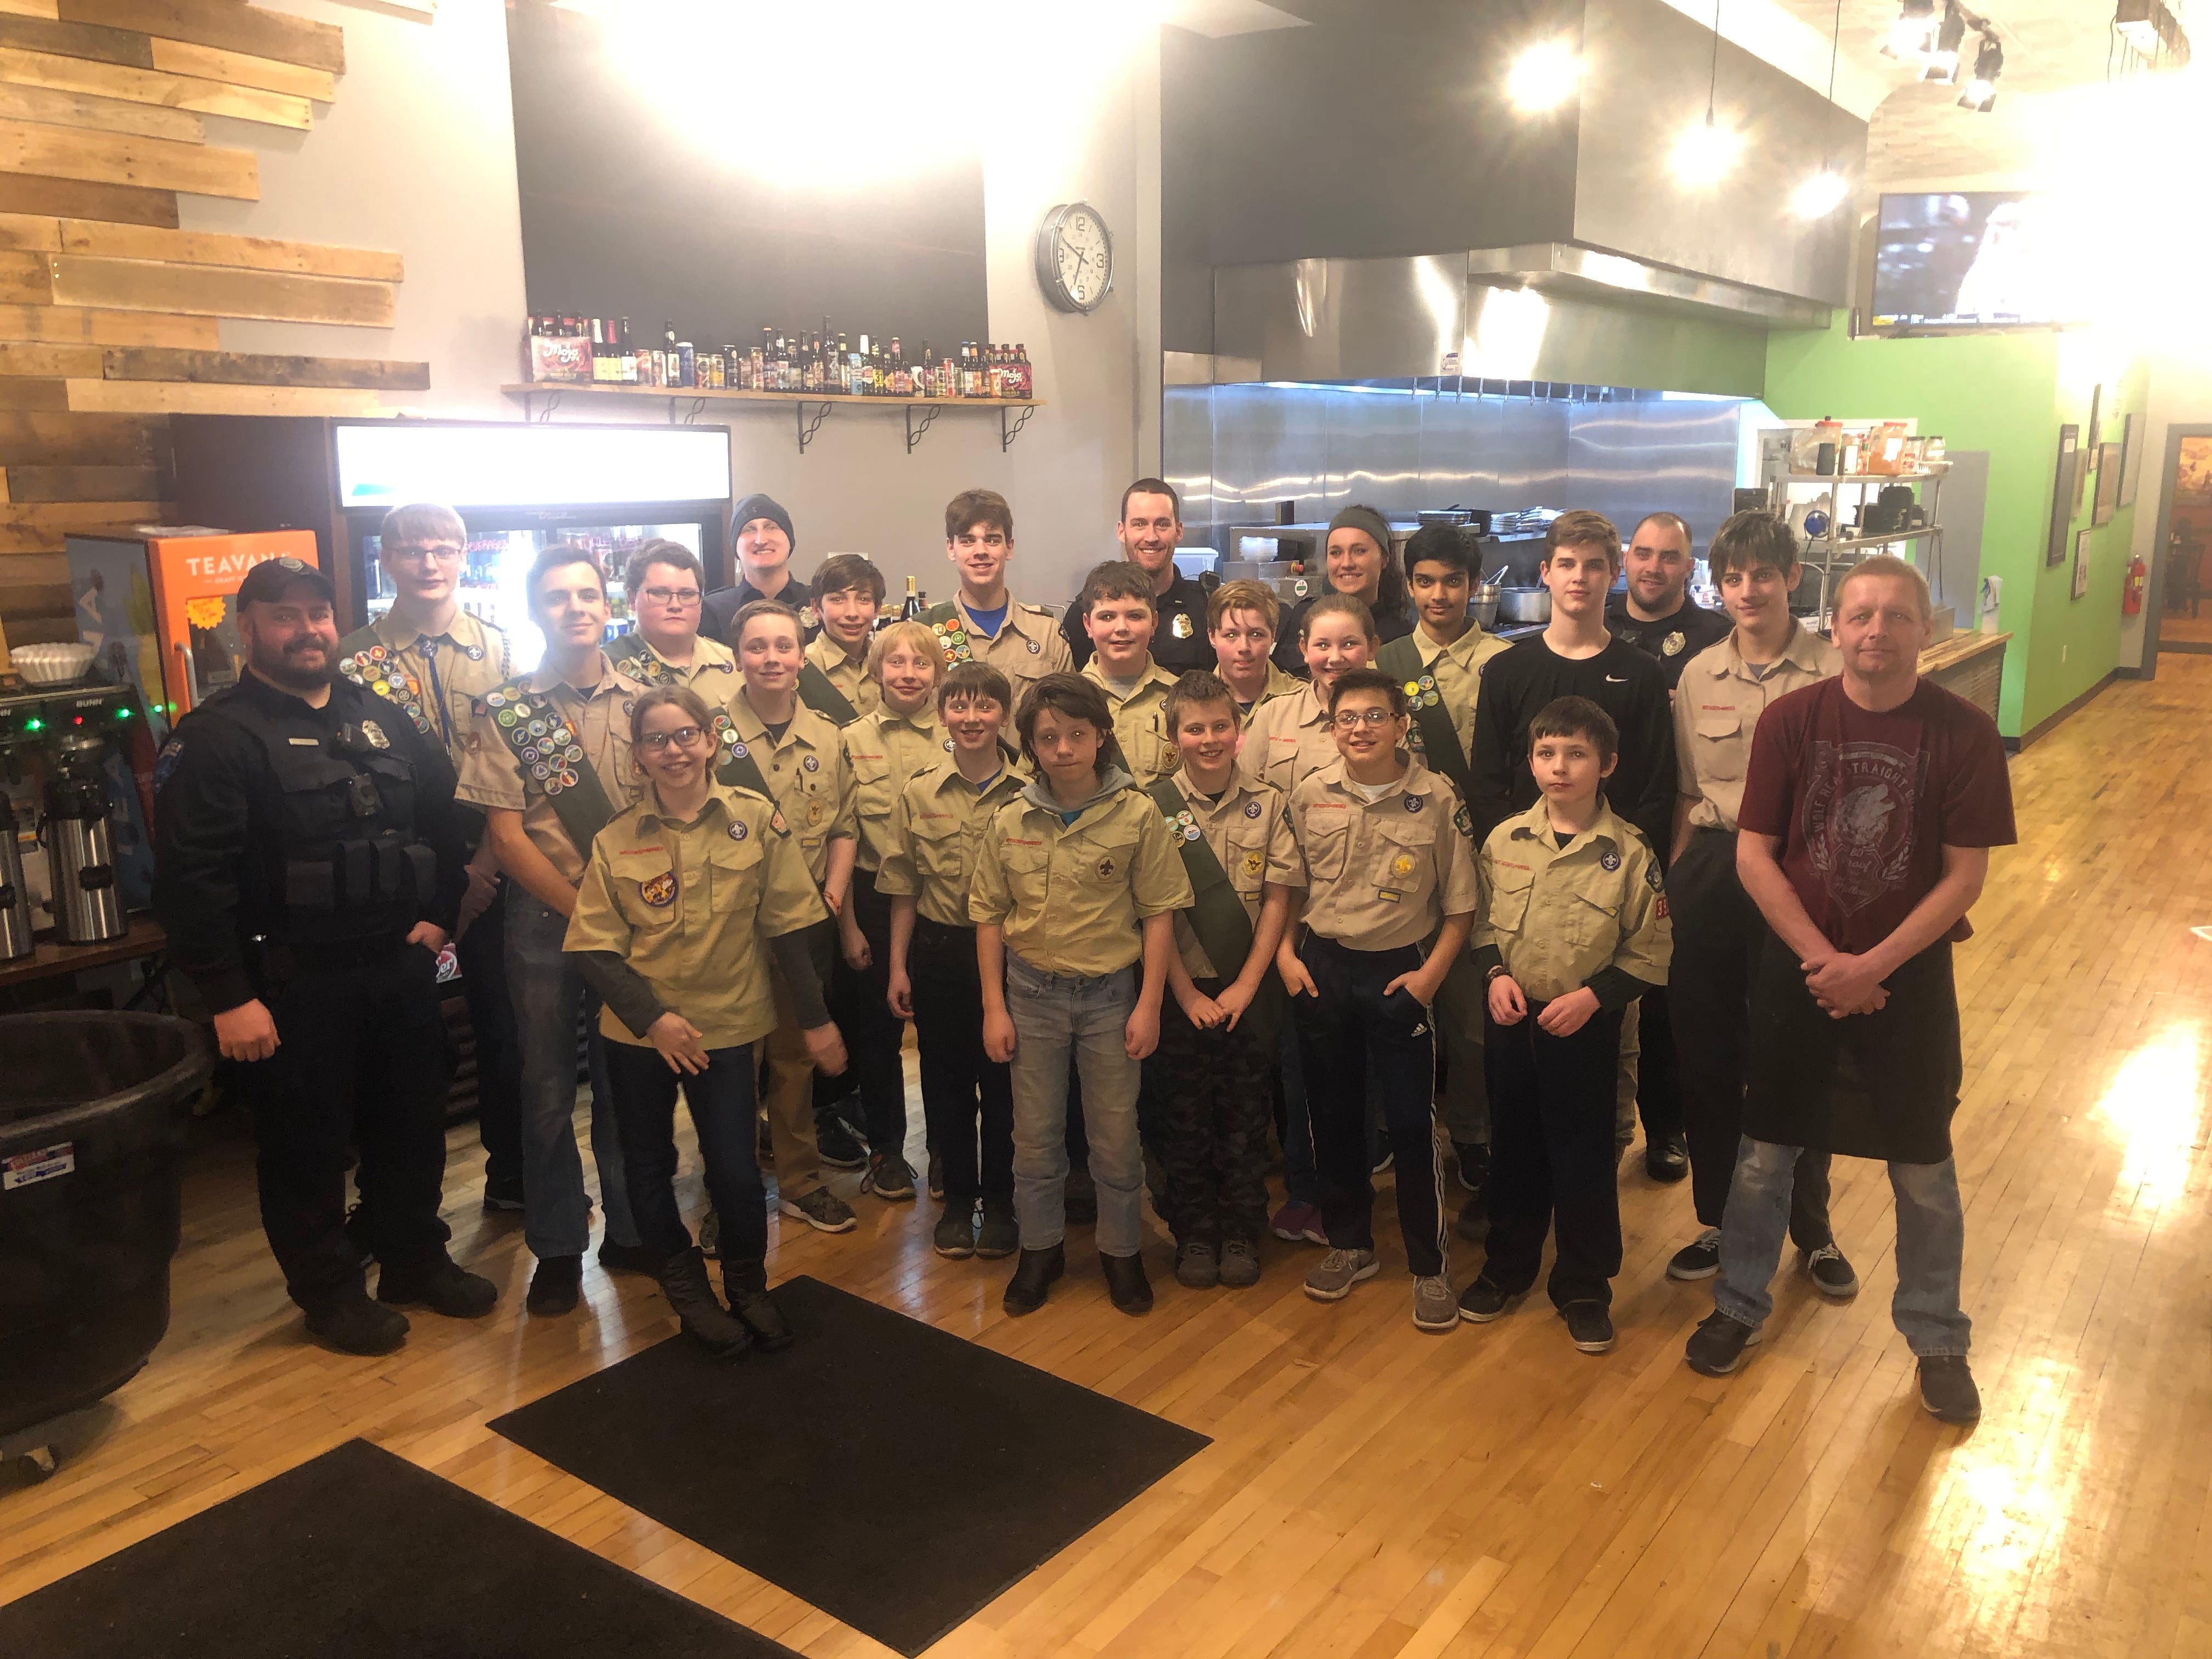 Scouts had a chance to visit with Marshfield police officers. Some of the participants posed for a picture after the meal.